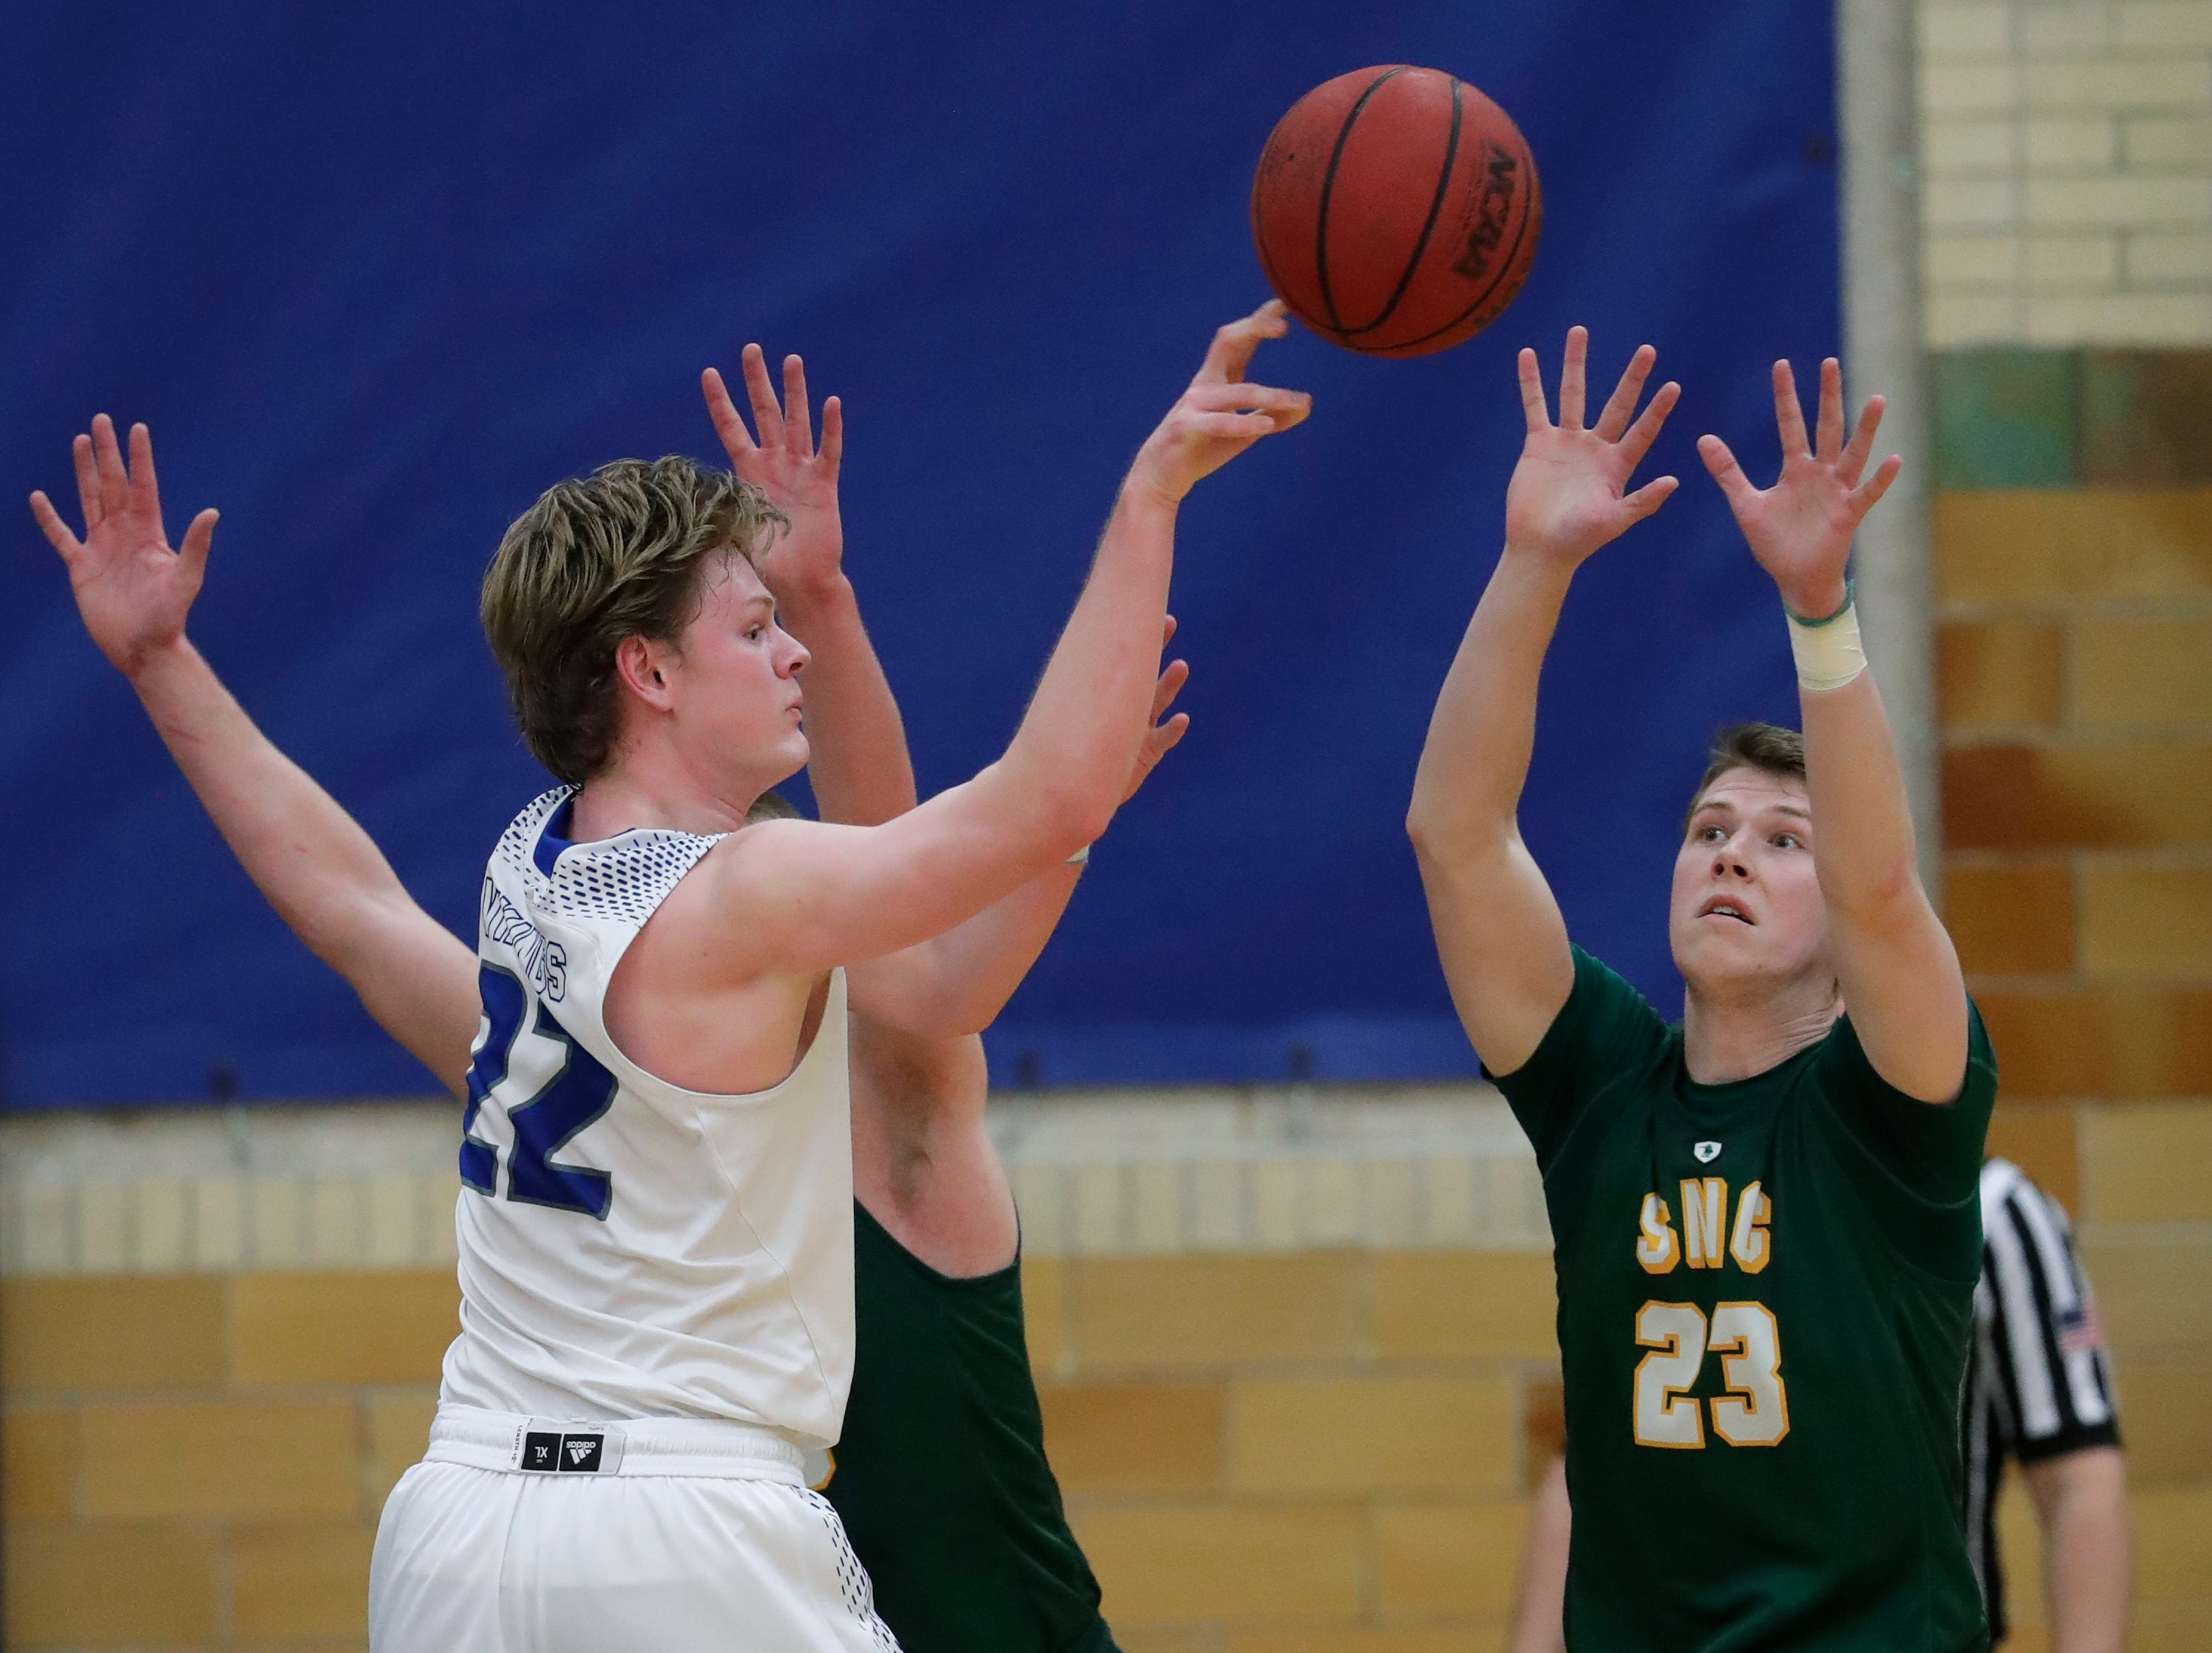 Lawrence University's Mason Materna (22) passes the ball against St. Norbert College's Drew Yetka (23) during their men's basketball game Thursday, January 31, 2019, at Alexander Gymnasium in Appleton, Wis. 